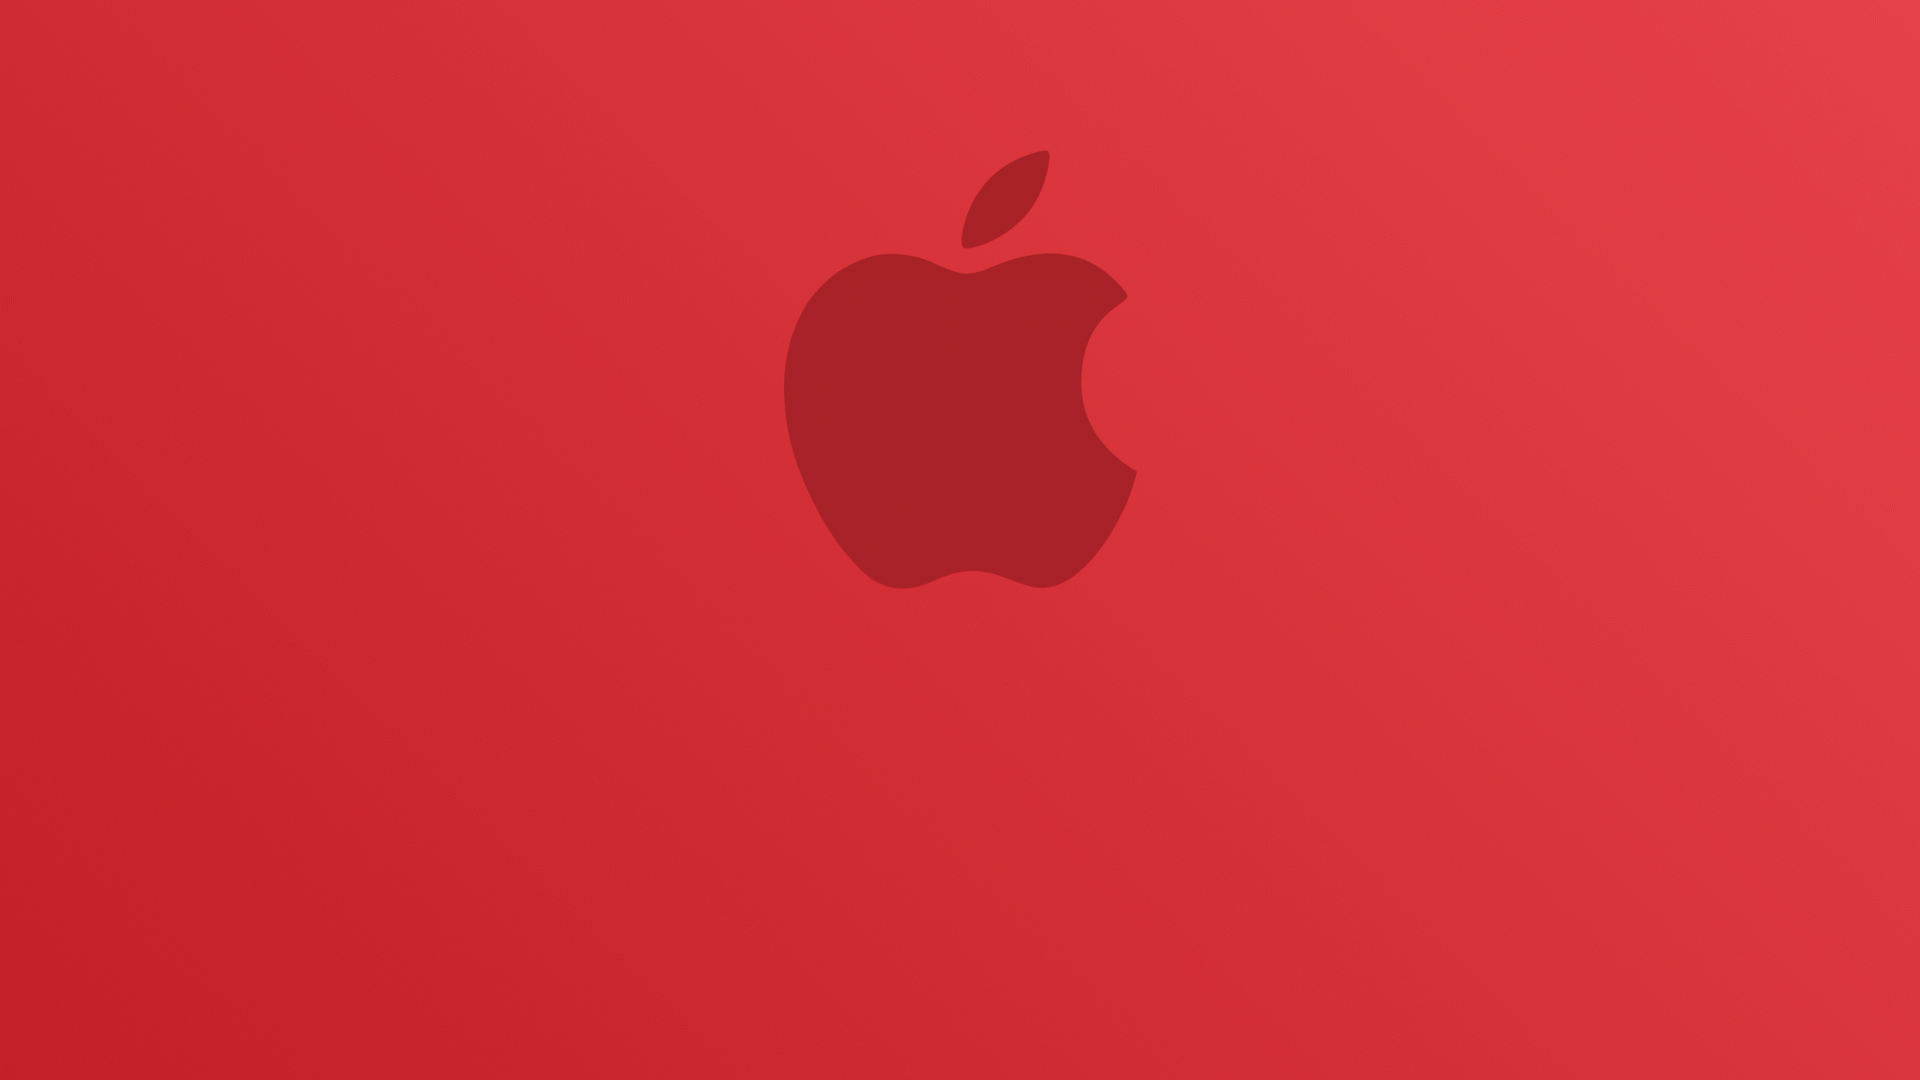 2500x2500px red apple wallpapers - wallpapersafari